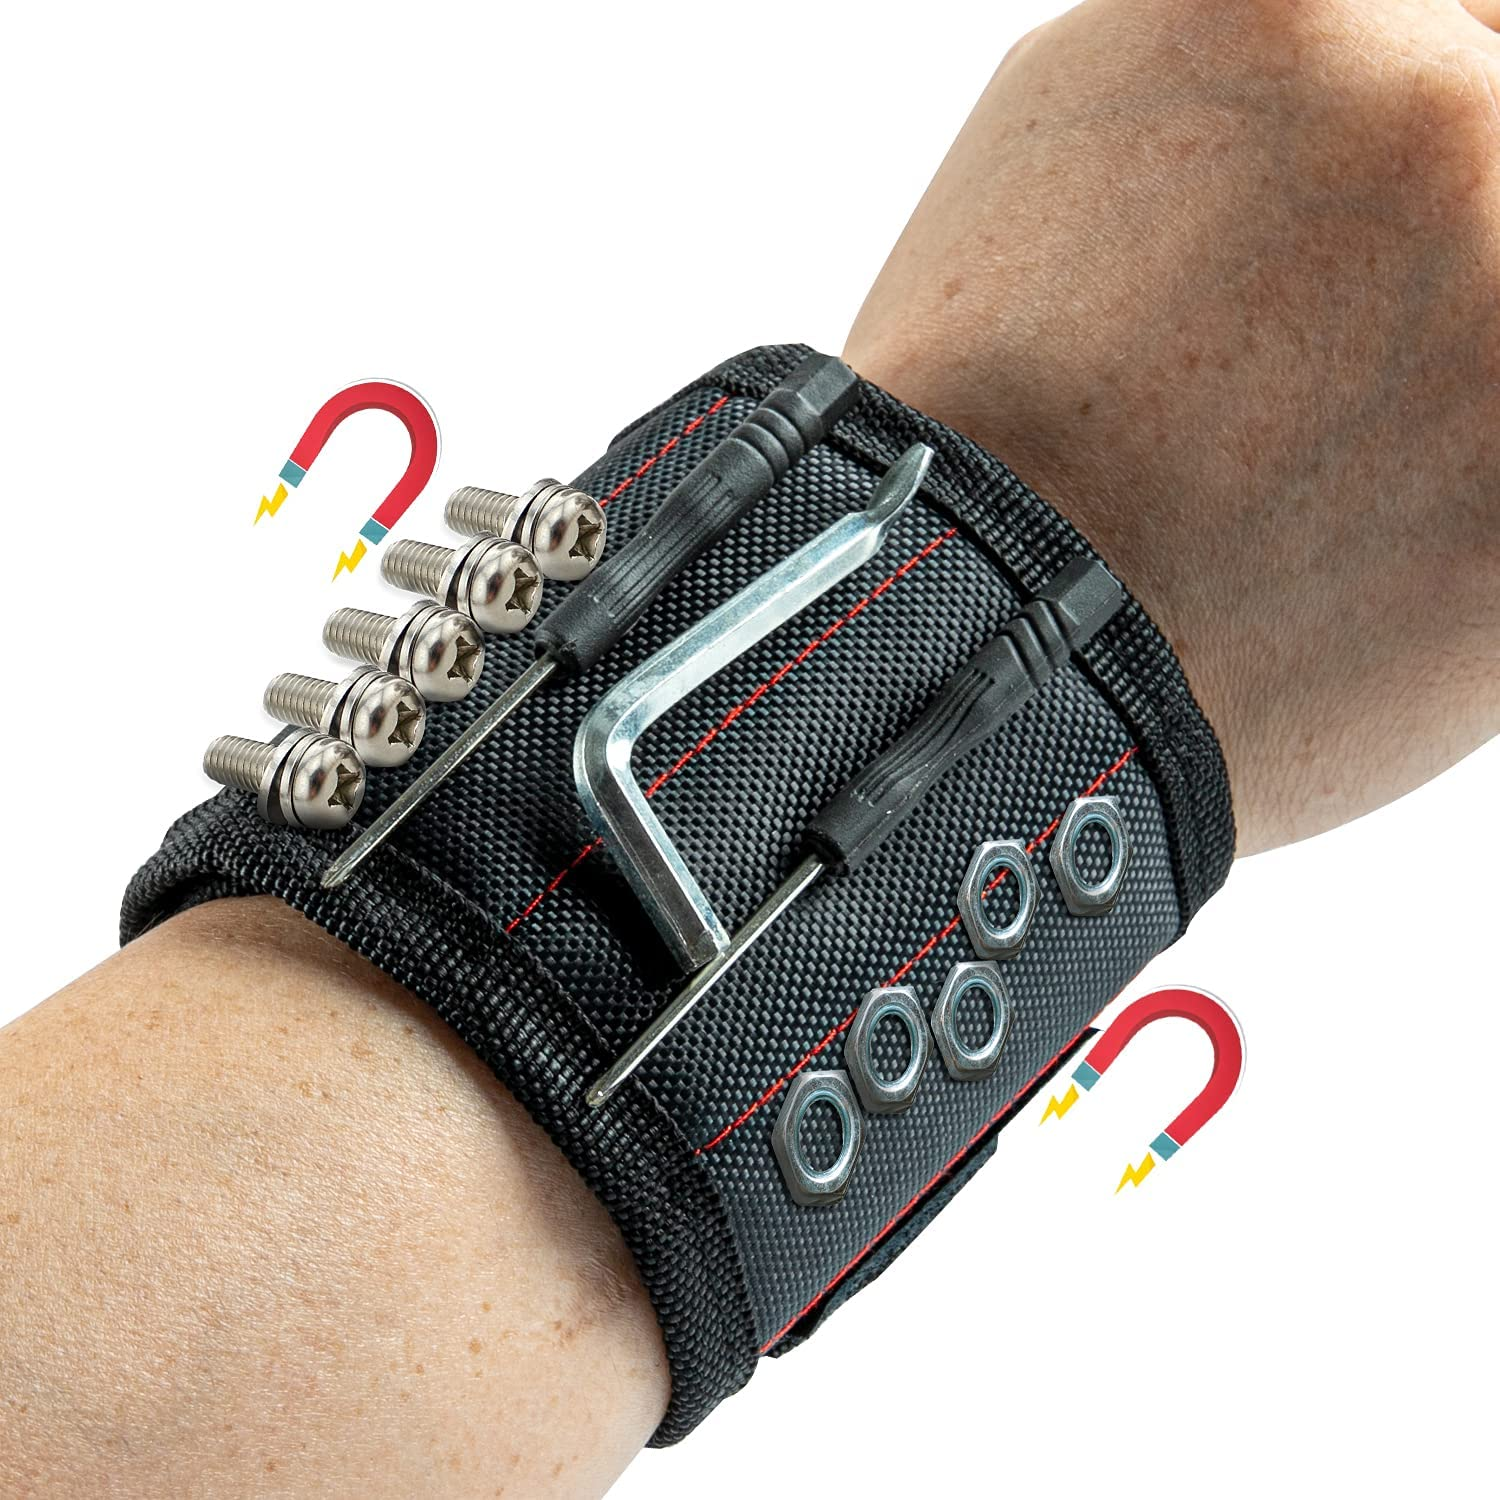 Newest Enhanced Magnetic Los Angeles Discount is also underway Mall Wristband Tool with Belt 15 Powerful M